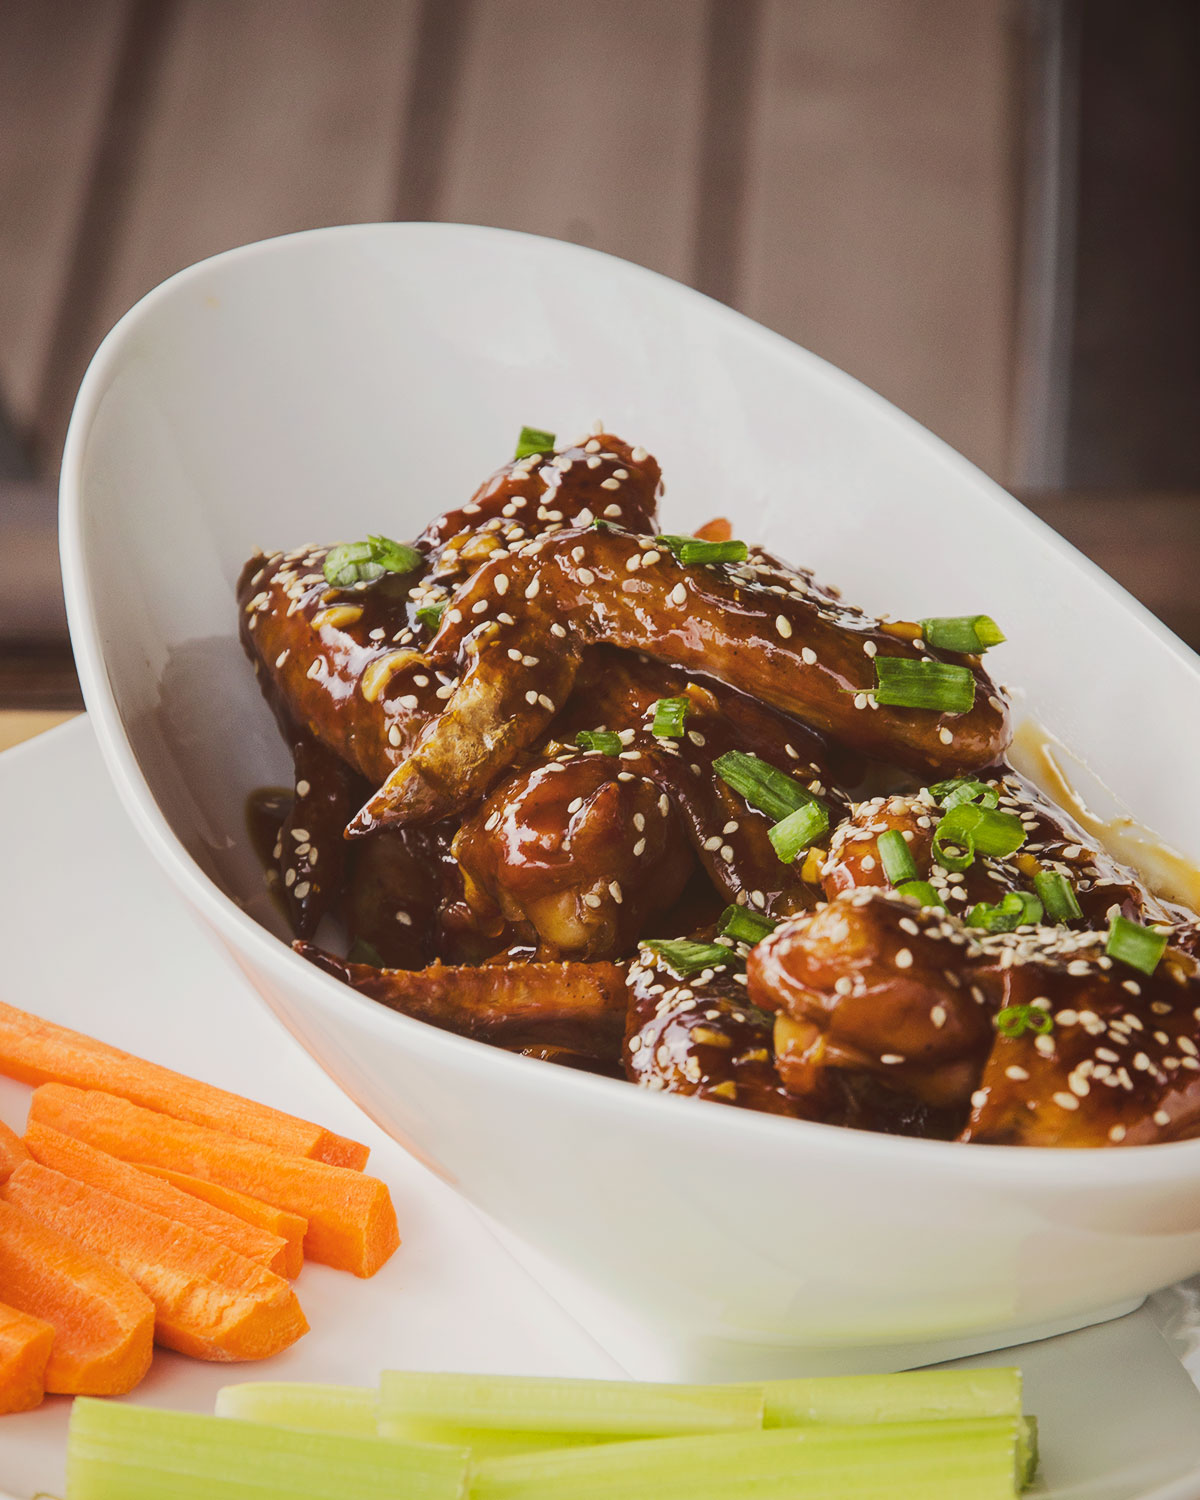 The finished Teriyaki Wings recipe is now garnished and ready to be enjoyed.